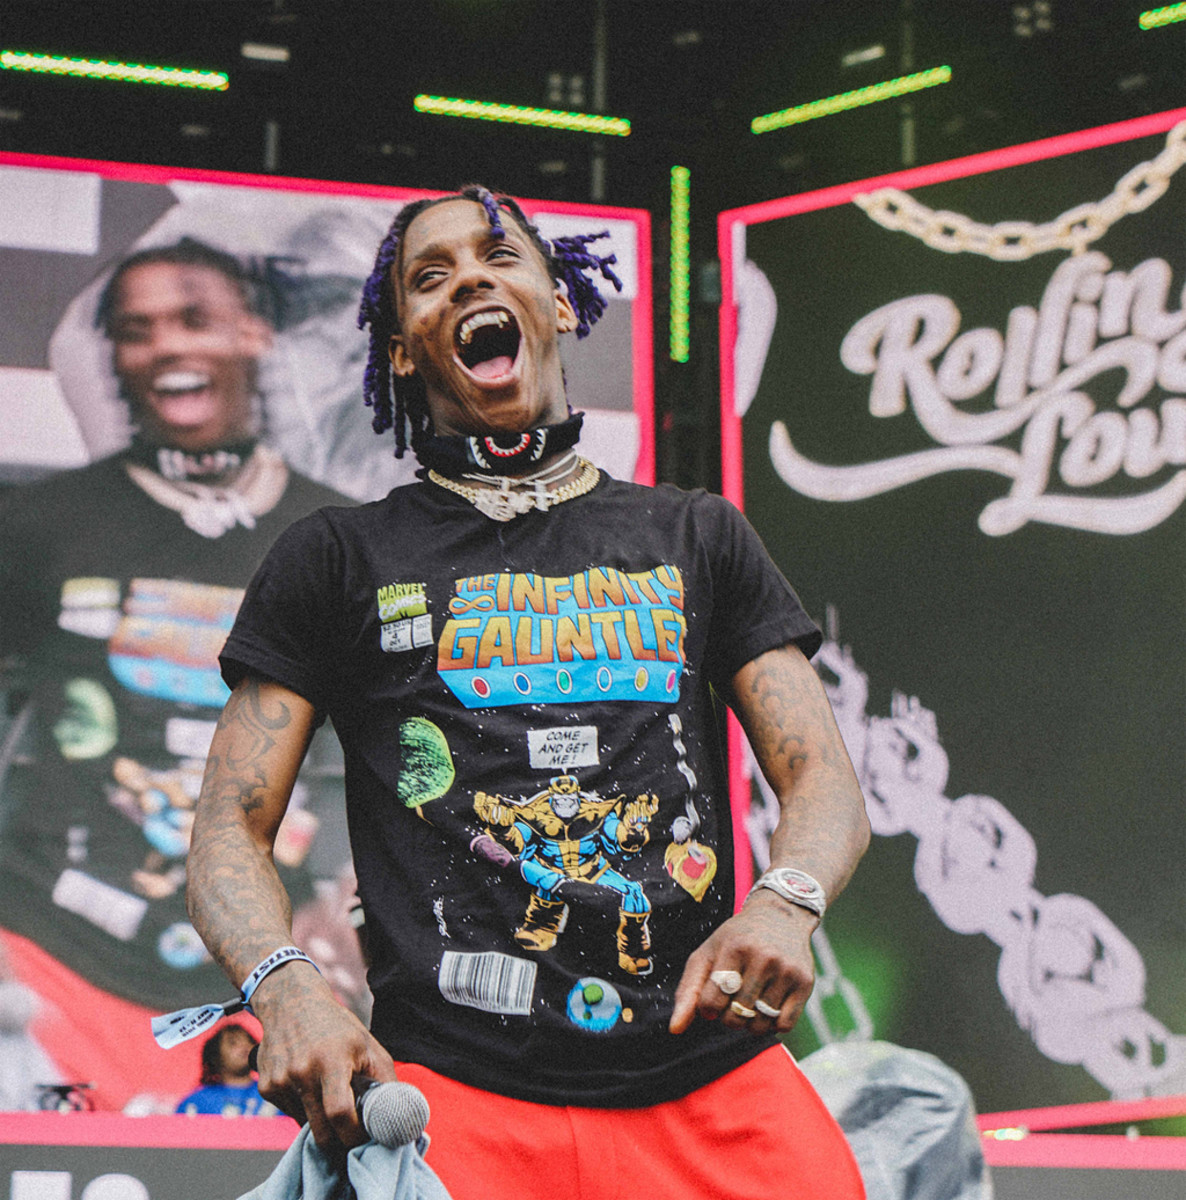 Famous Dex performs at Rolling Loud, 2018